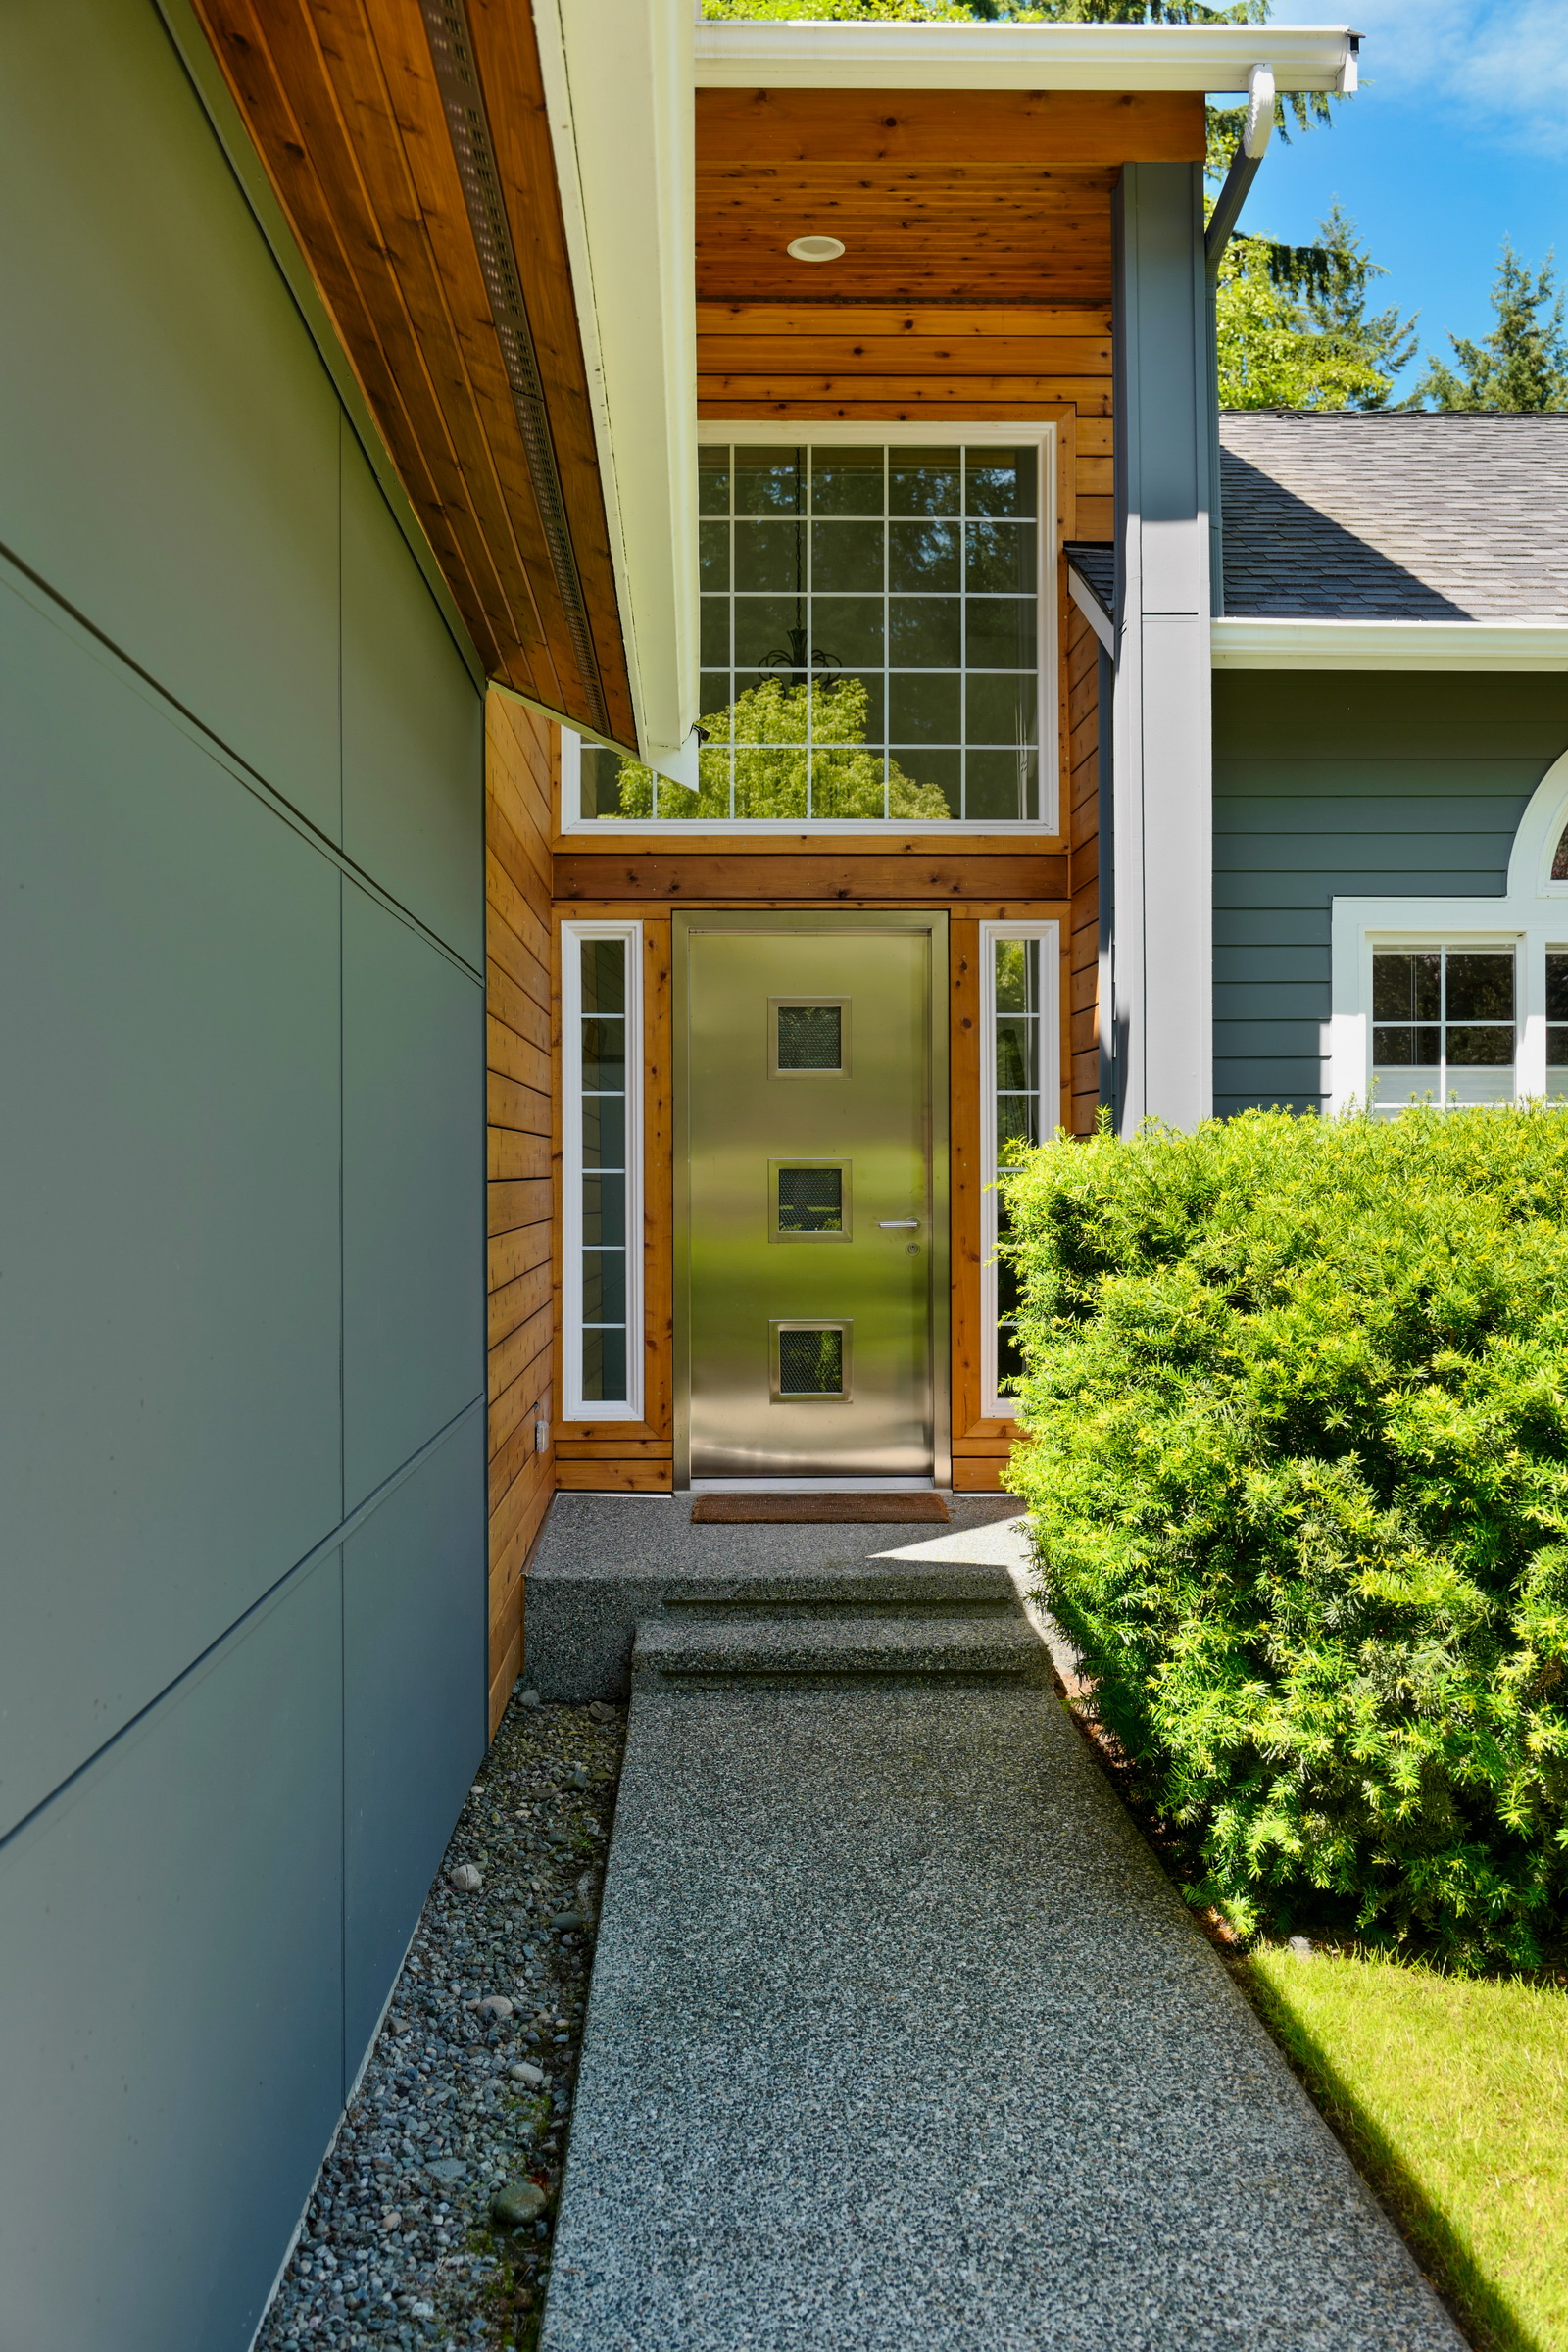 Inviting entrance with Cedar accents